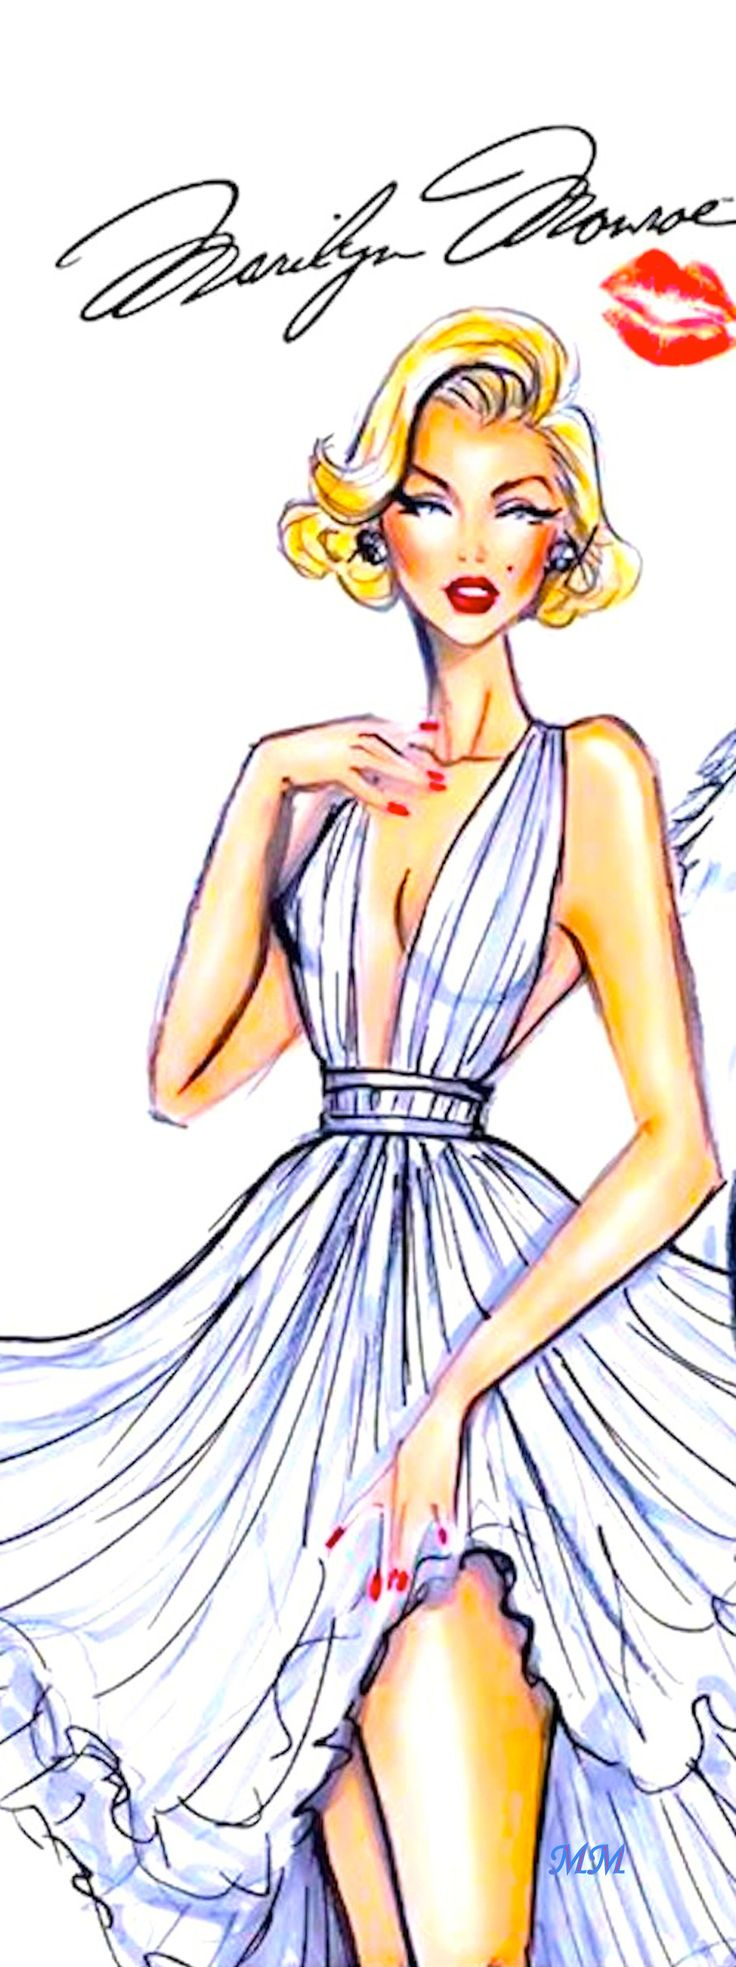 Marilyn Monroe by Hayden Williams Fashion Illustration   House of Beccaria~